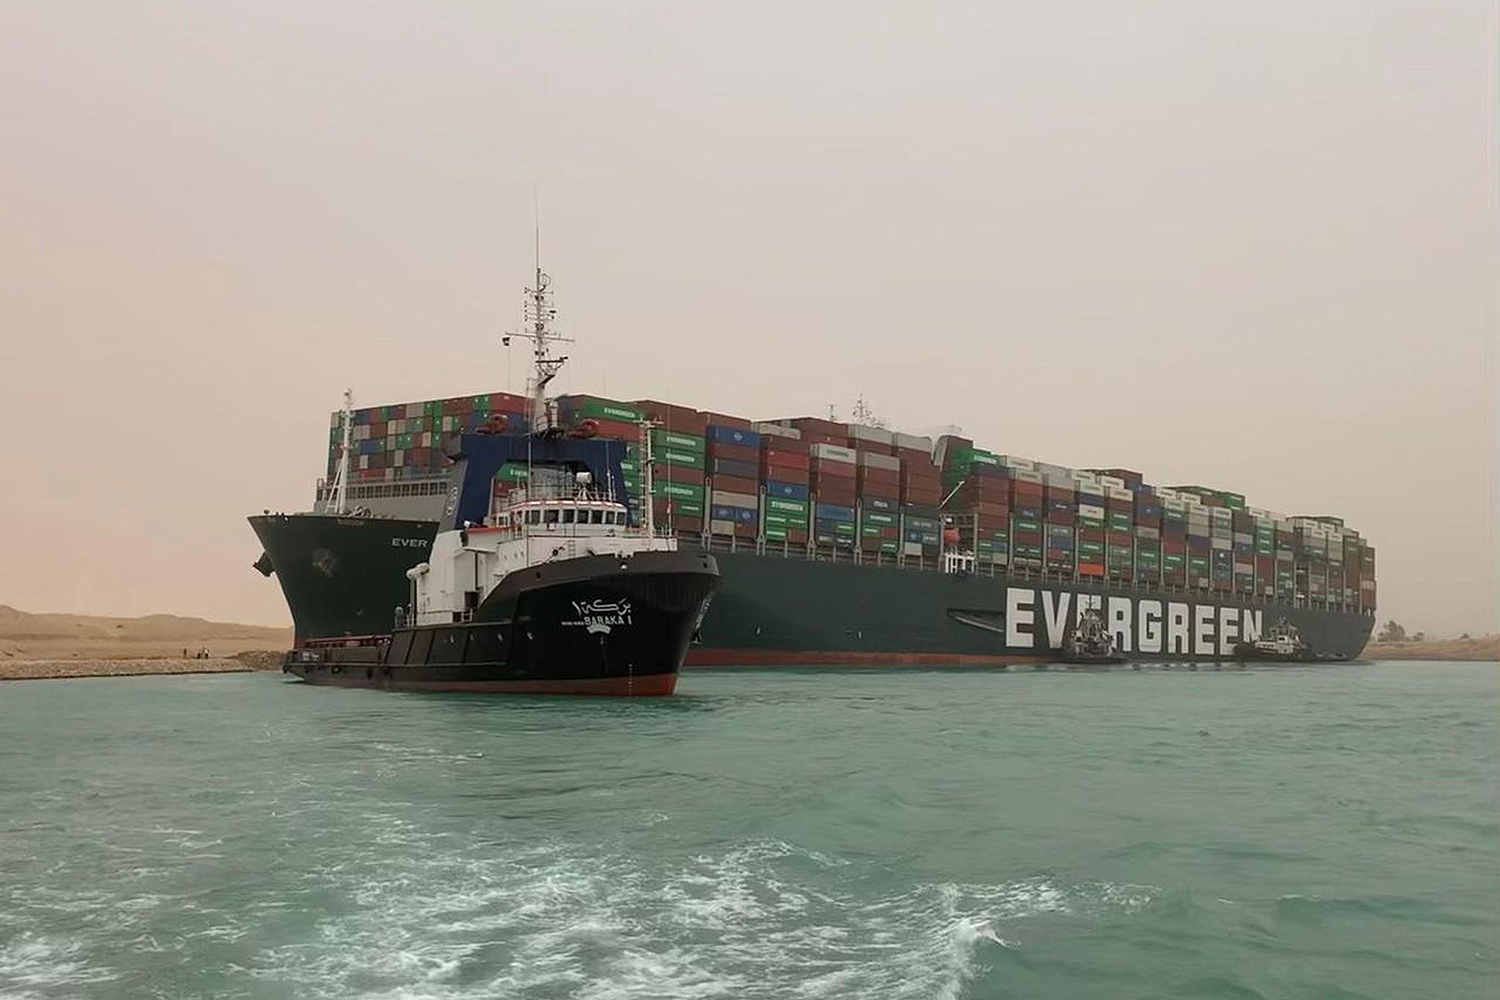 Suez Canal blocked by a large container ship